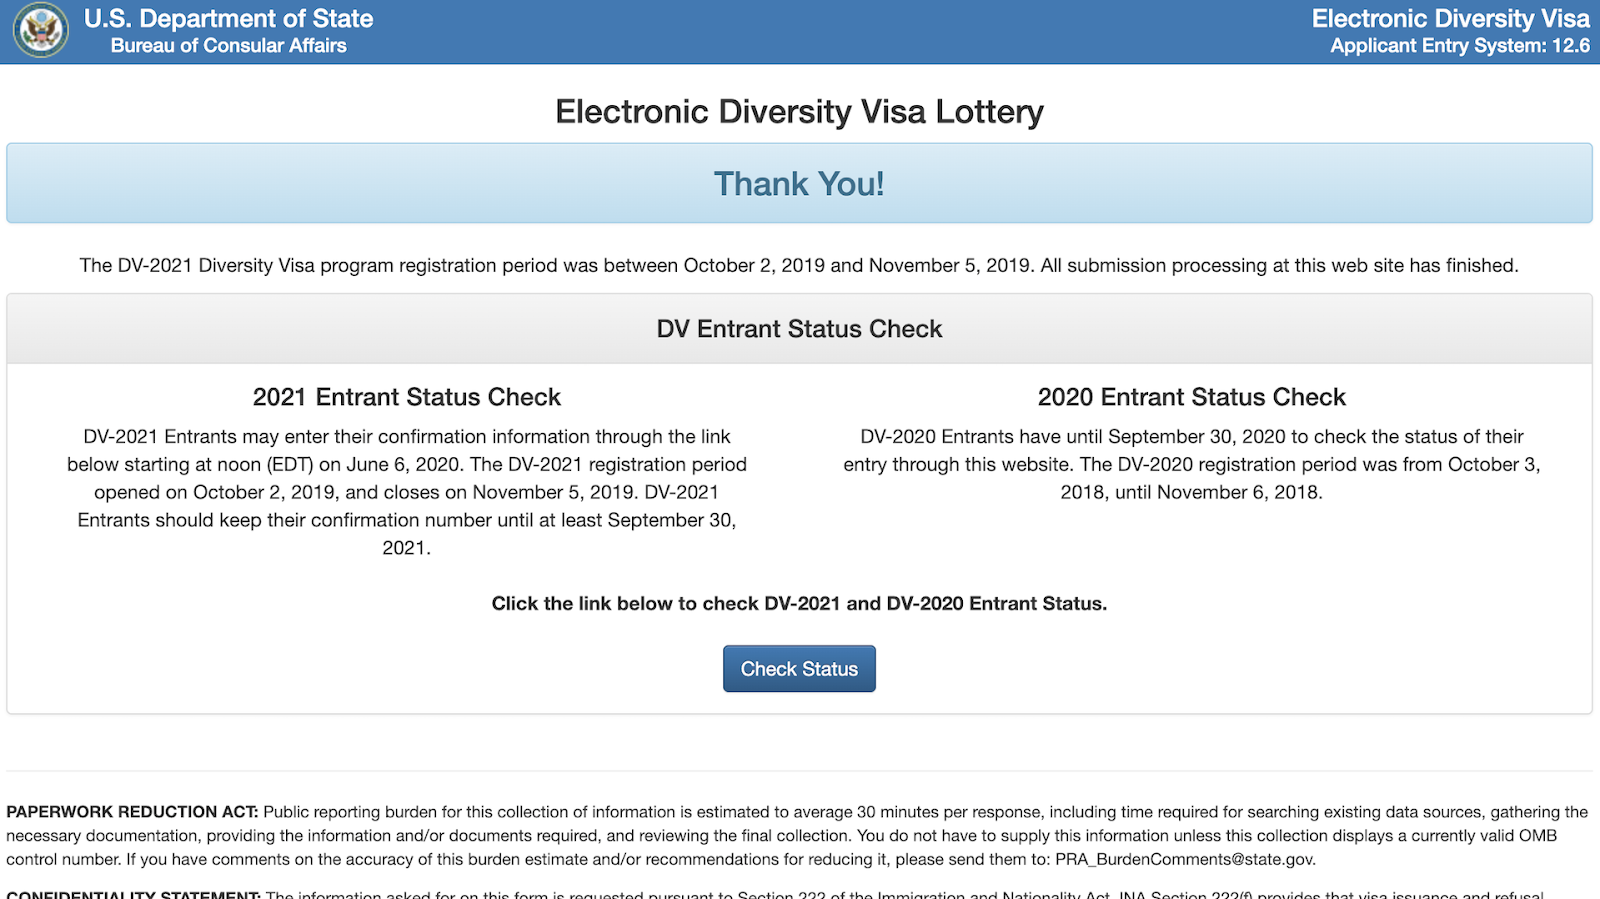 Screenshot from an official website to apply for a lottery green card